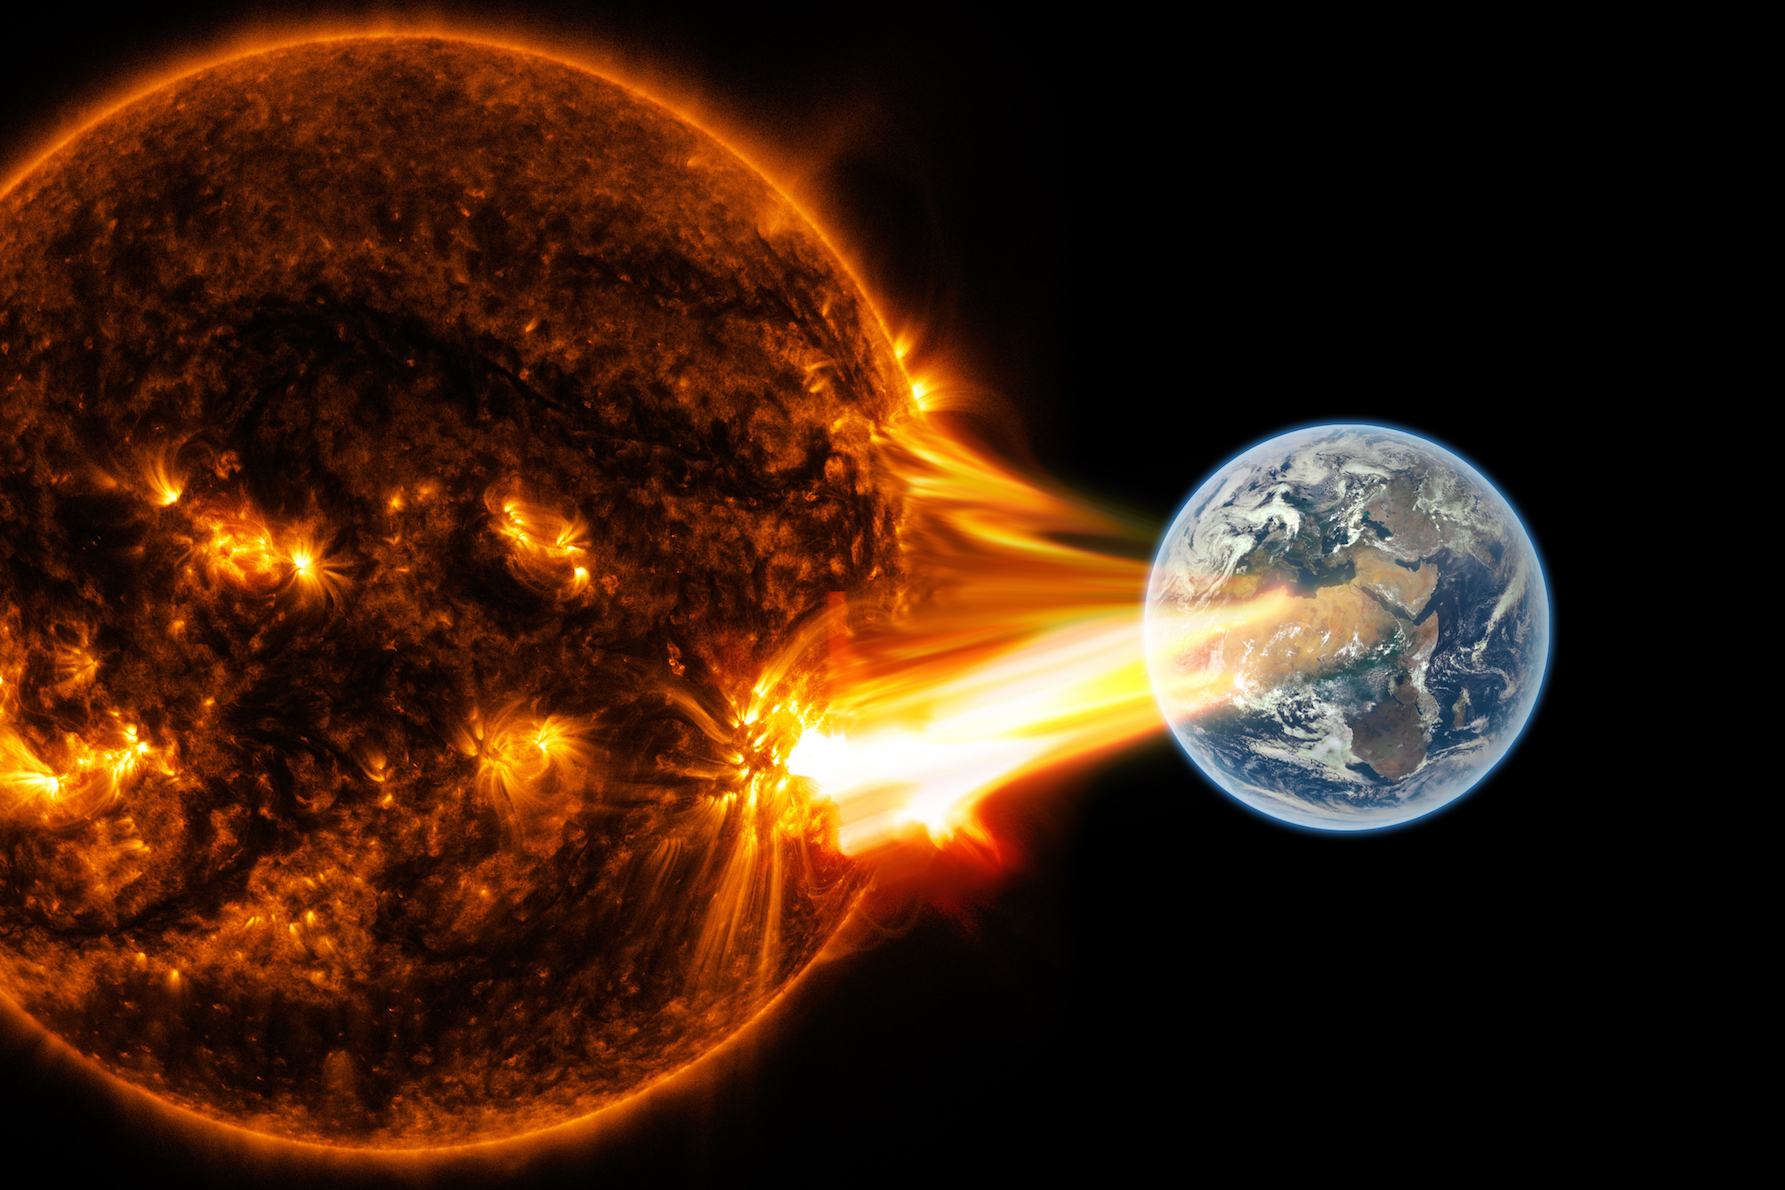 New evidence shows massive solar storms in Earth's history ...